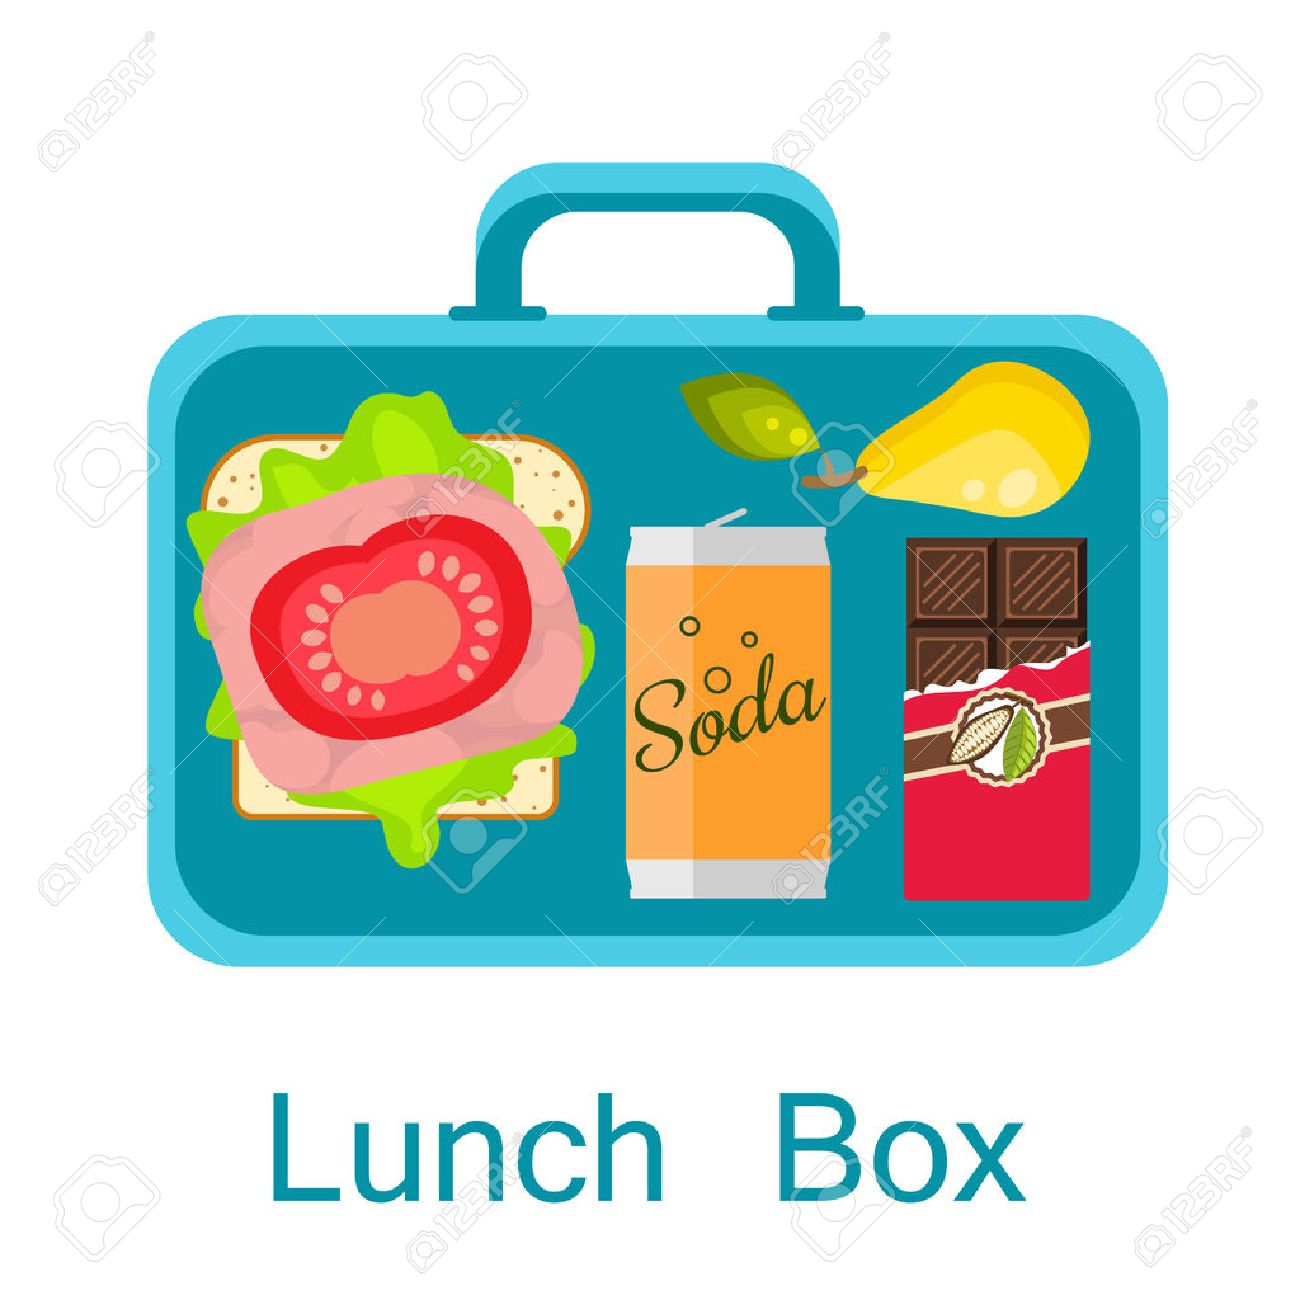 491 Packed Lunch Stock Illustrations, Cliparts And Royalty Free ...